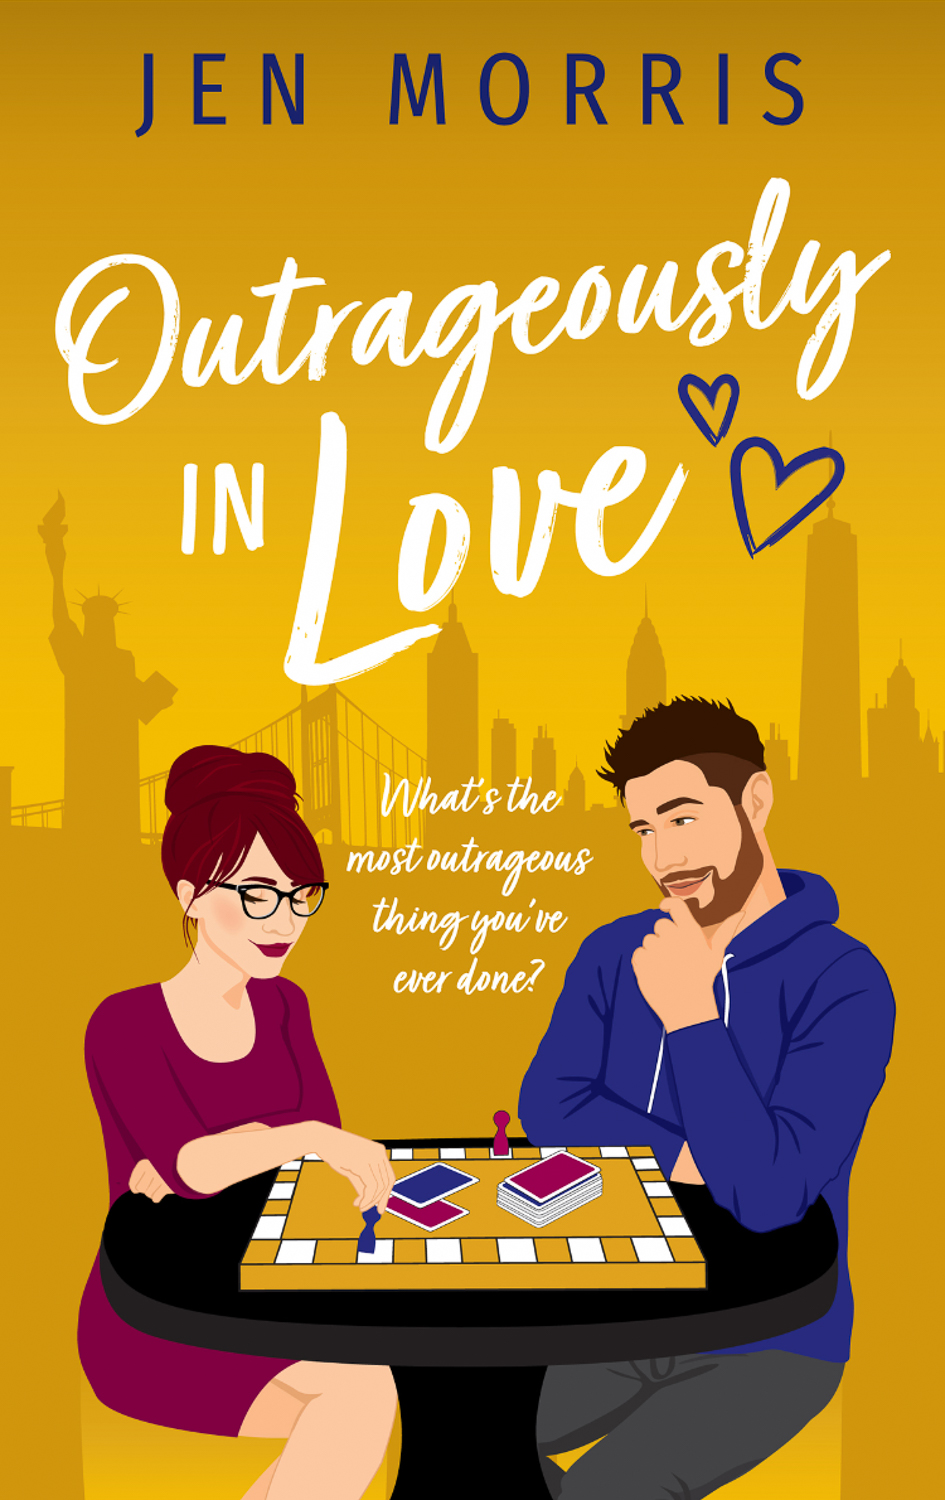 The cover of Outrageously in Love by Jen Morris, a woman and a man seated at a table playing a board game